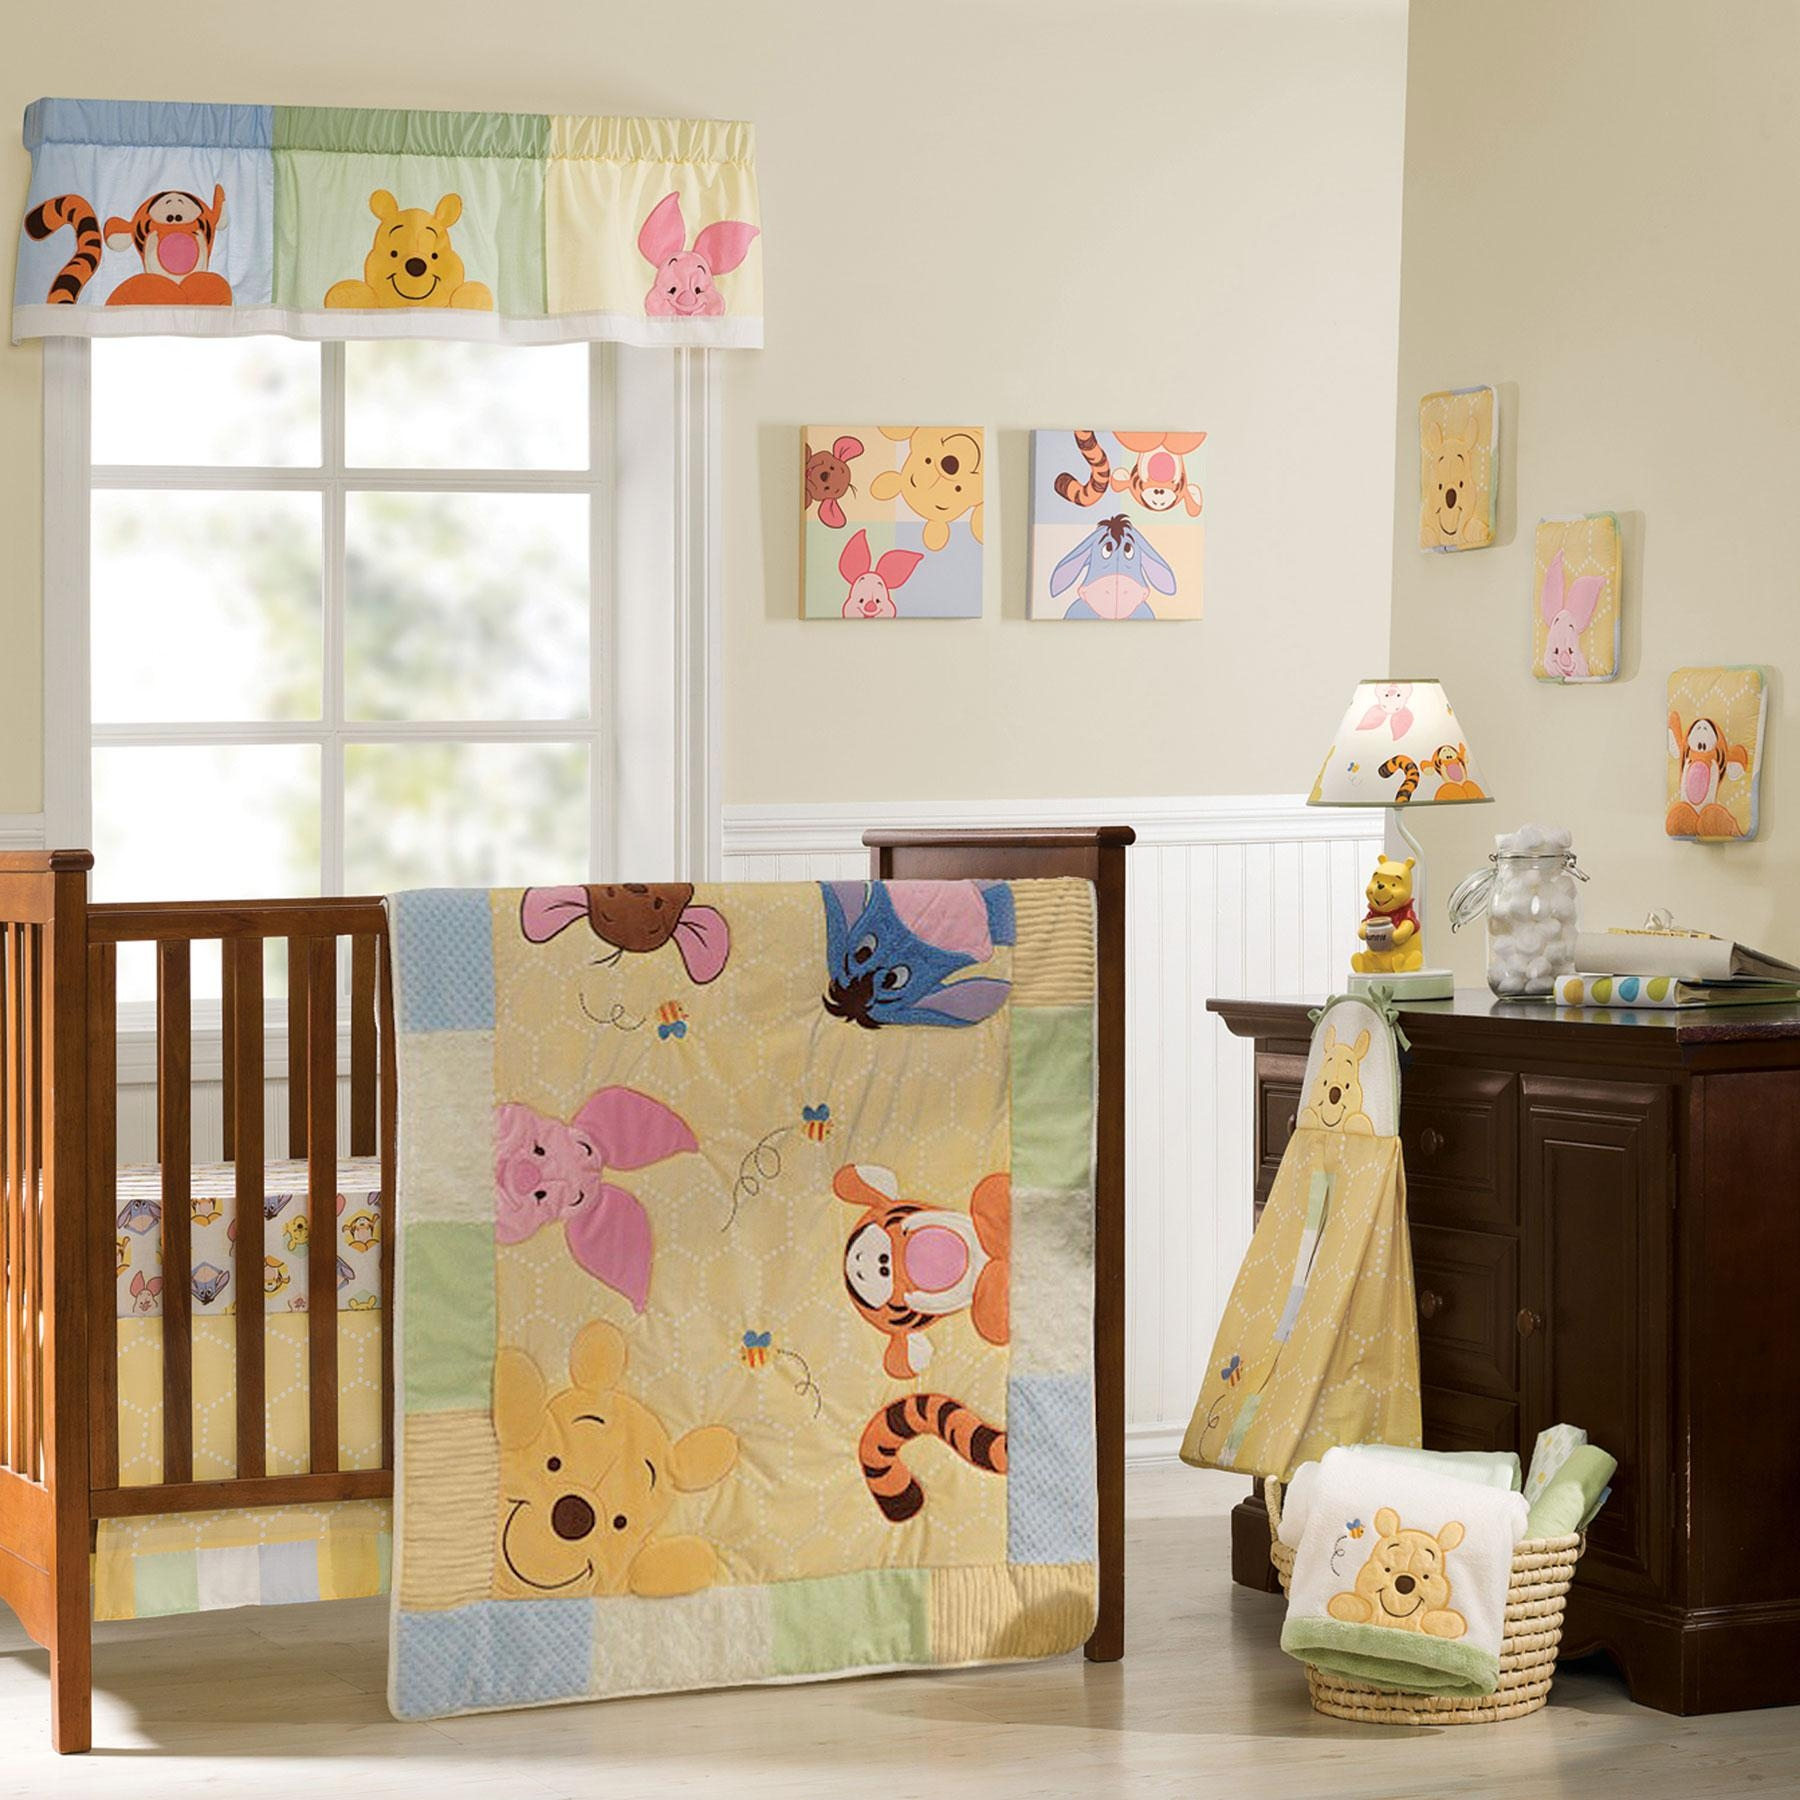 Winnie The Pooh Nursery Wall Art — Modern Home Interiors : Ideas In Winnie The Pooh Wall Art For Nursery (View 16 of 20)